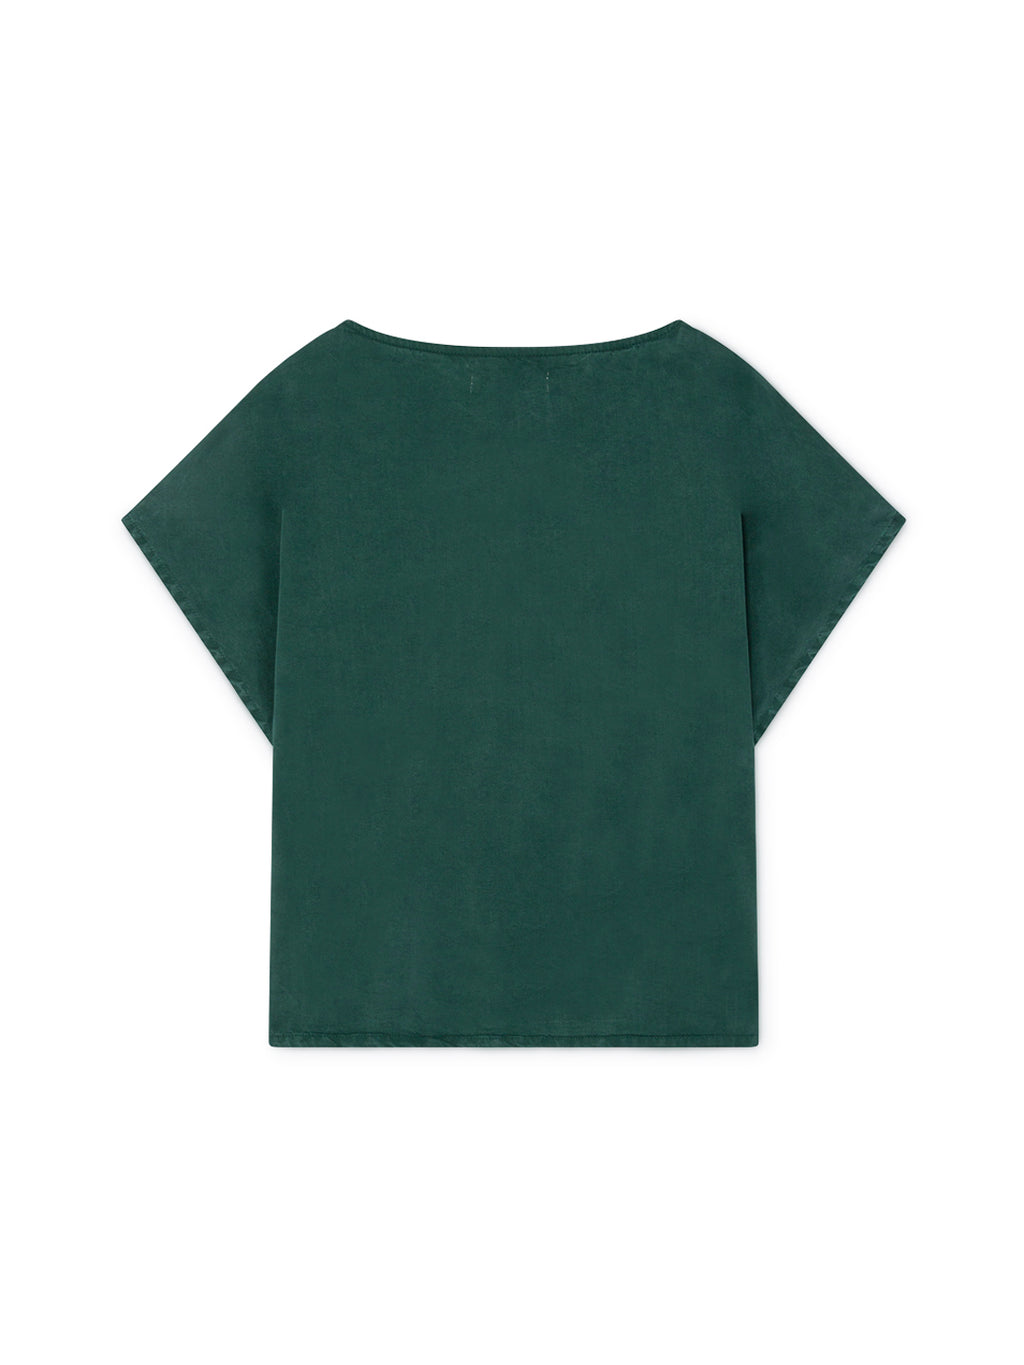 TWOTHIRDS Womens Top: Guafo - Trekking Green back